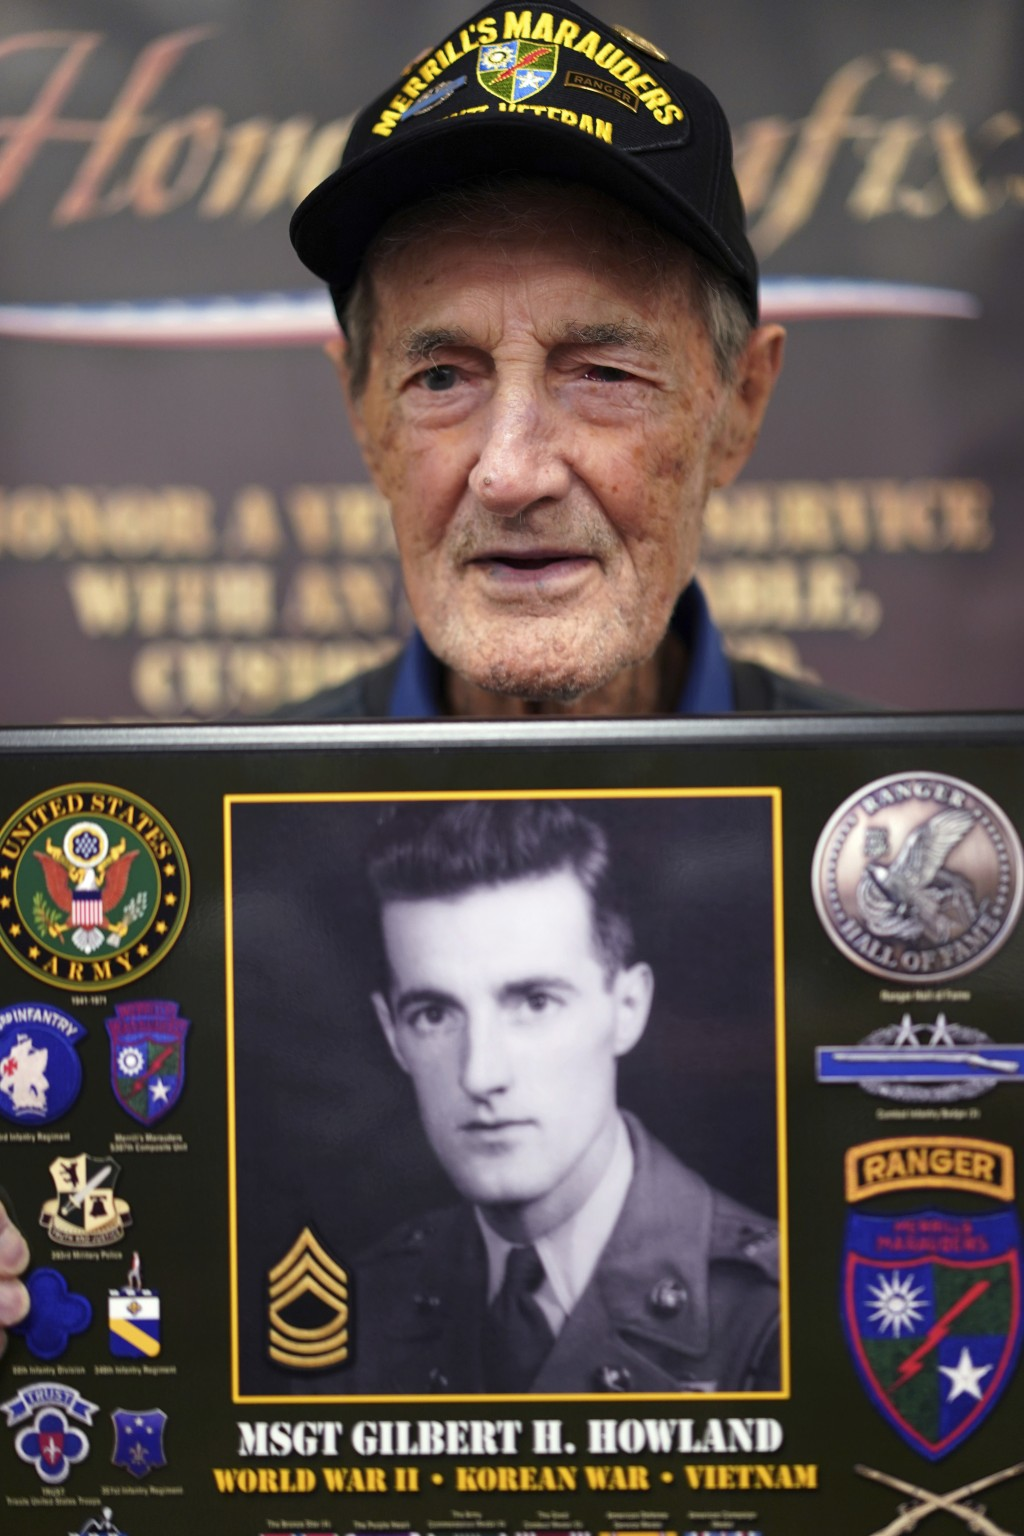 CORRECTS TO LANGHORN, NOT LONGHORN - Gilbert Howland, of Langhorn, Pa., one of the few remaining members of the famed WWII Army unit Merrill's Maraude